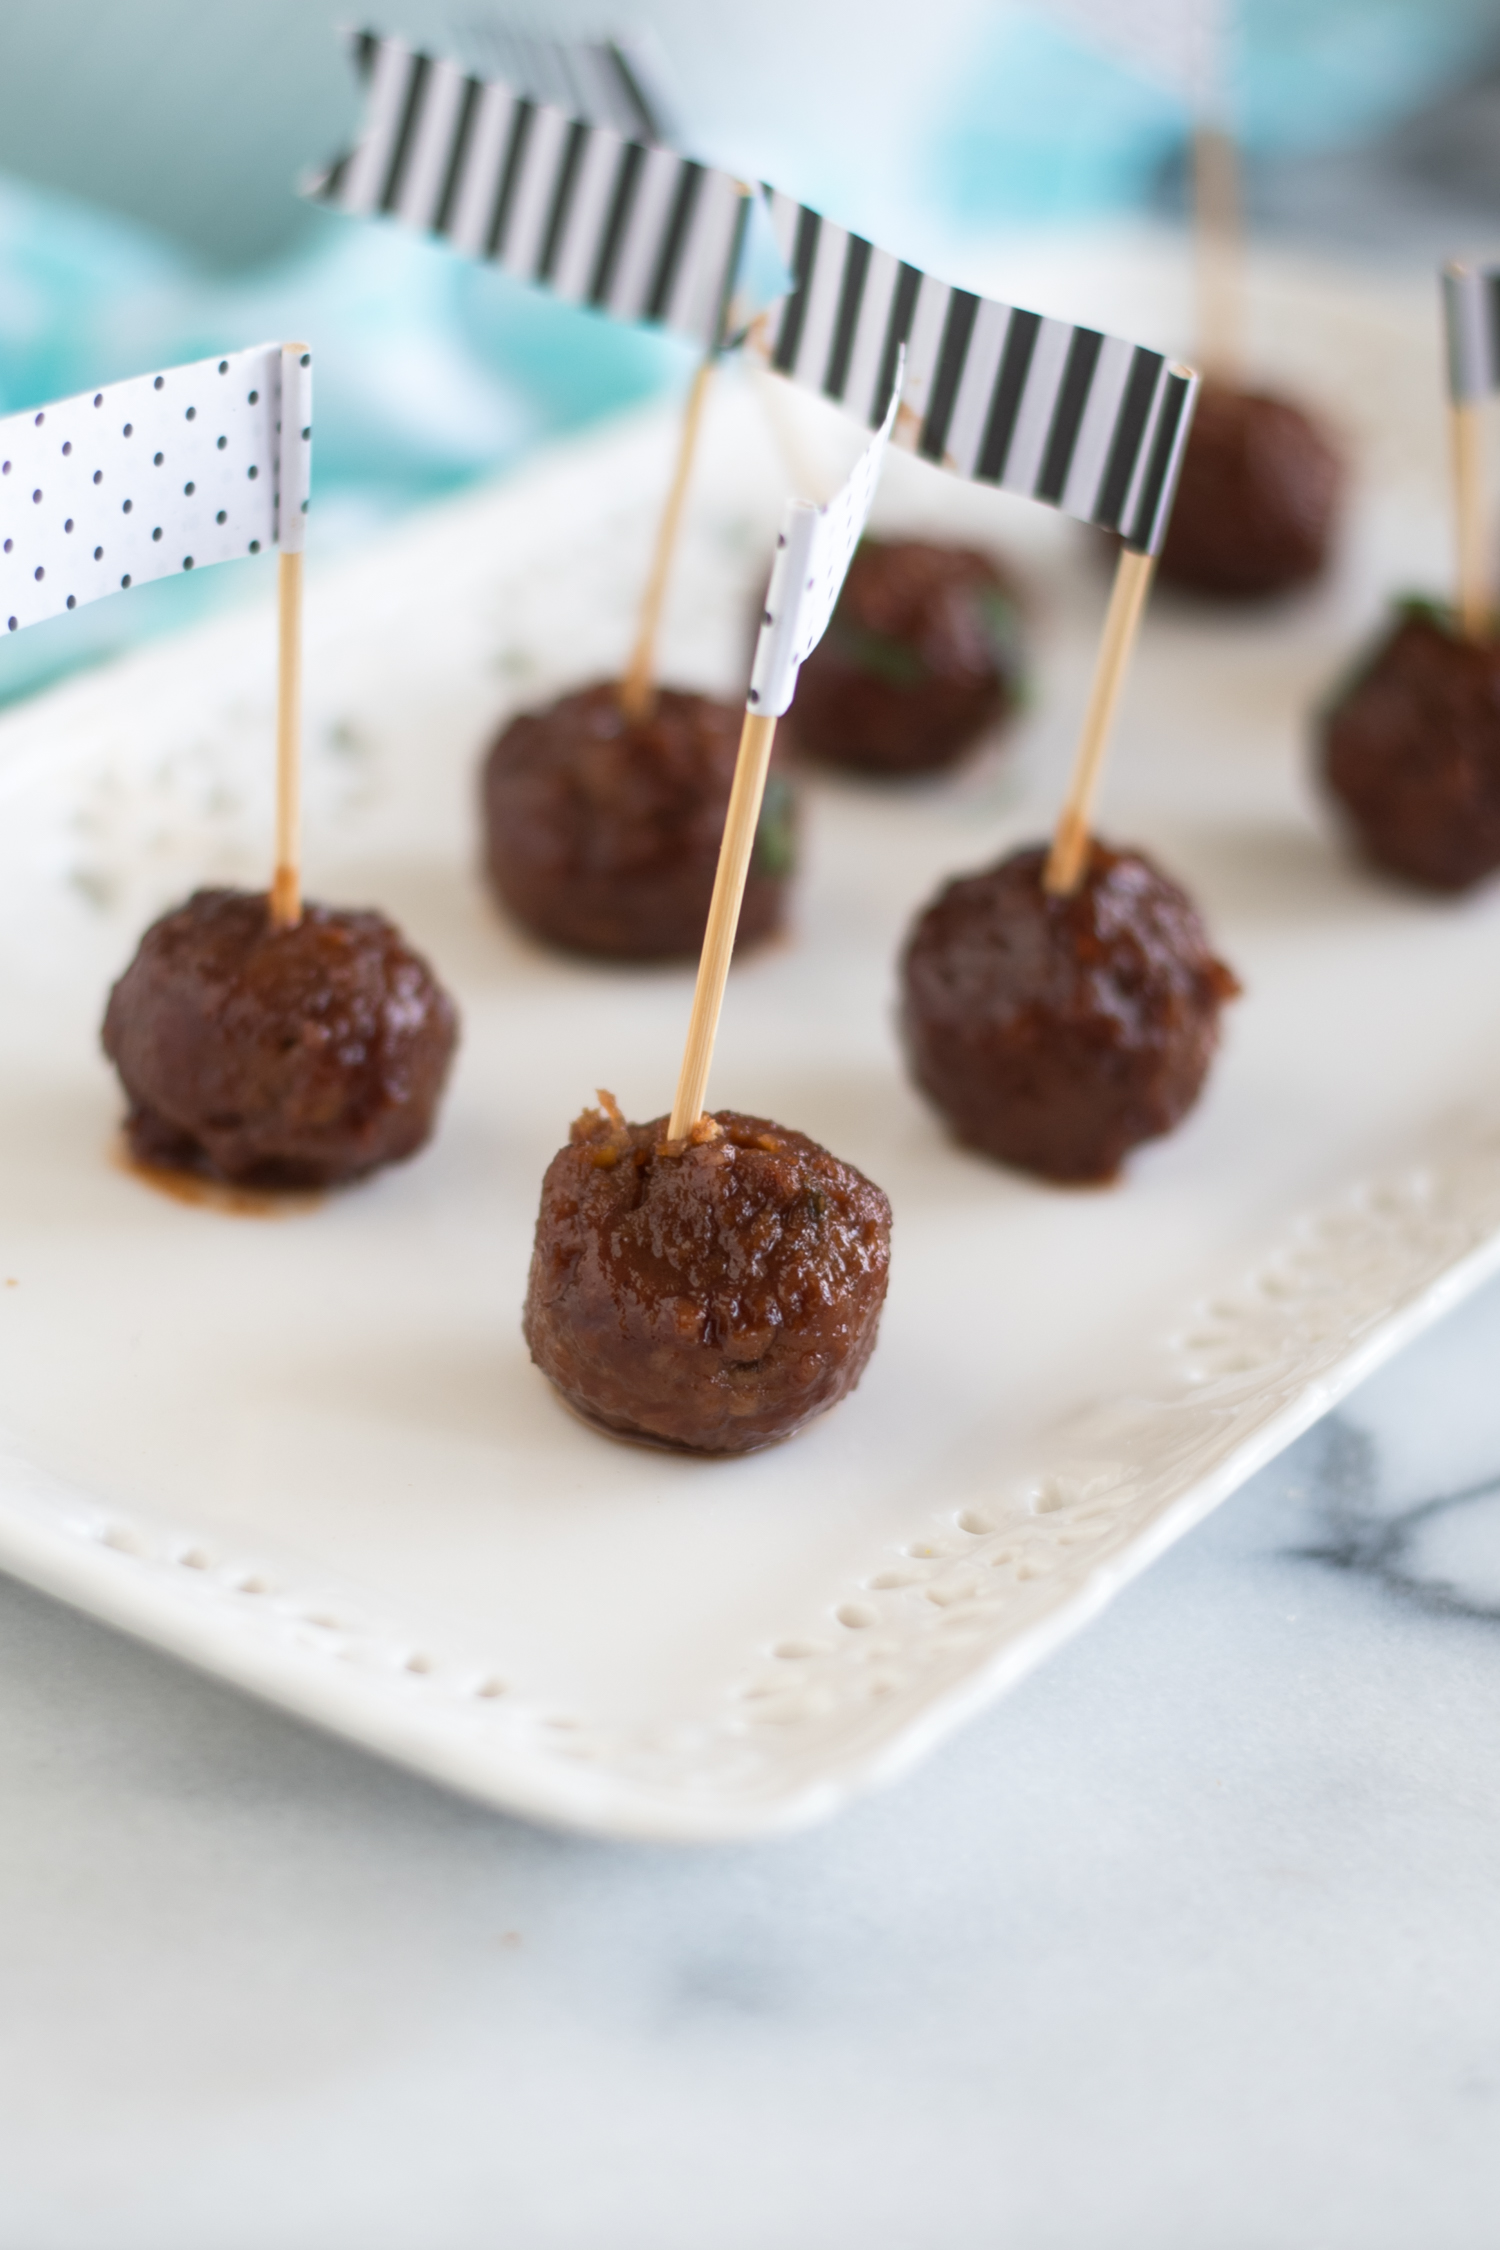 Slow Cooker Vegan Chili Sauce and Grape Jelly Meatballs are perfect for game day or holiday entertaining! #vegan #veganrecipes #Christmas #fall #fallrecipes #thanksgiving